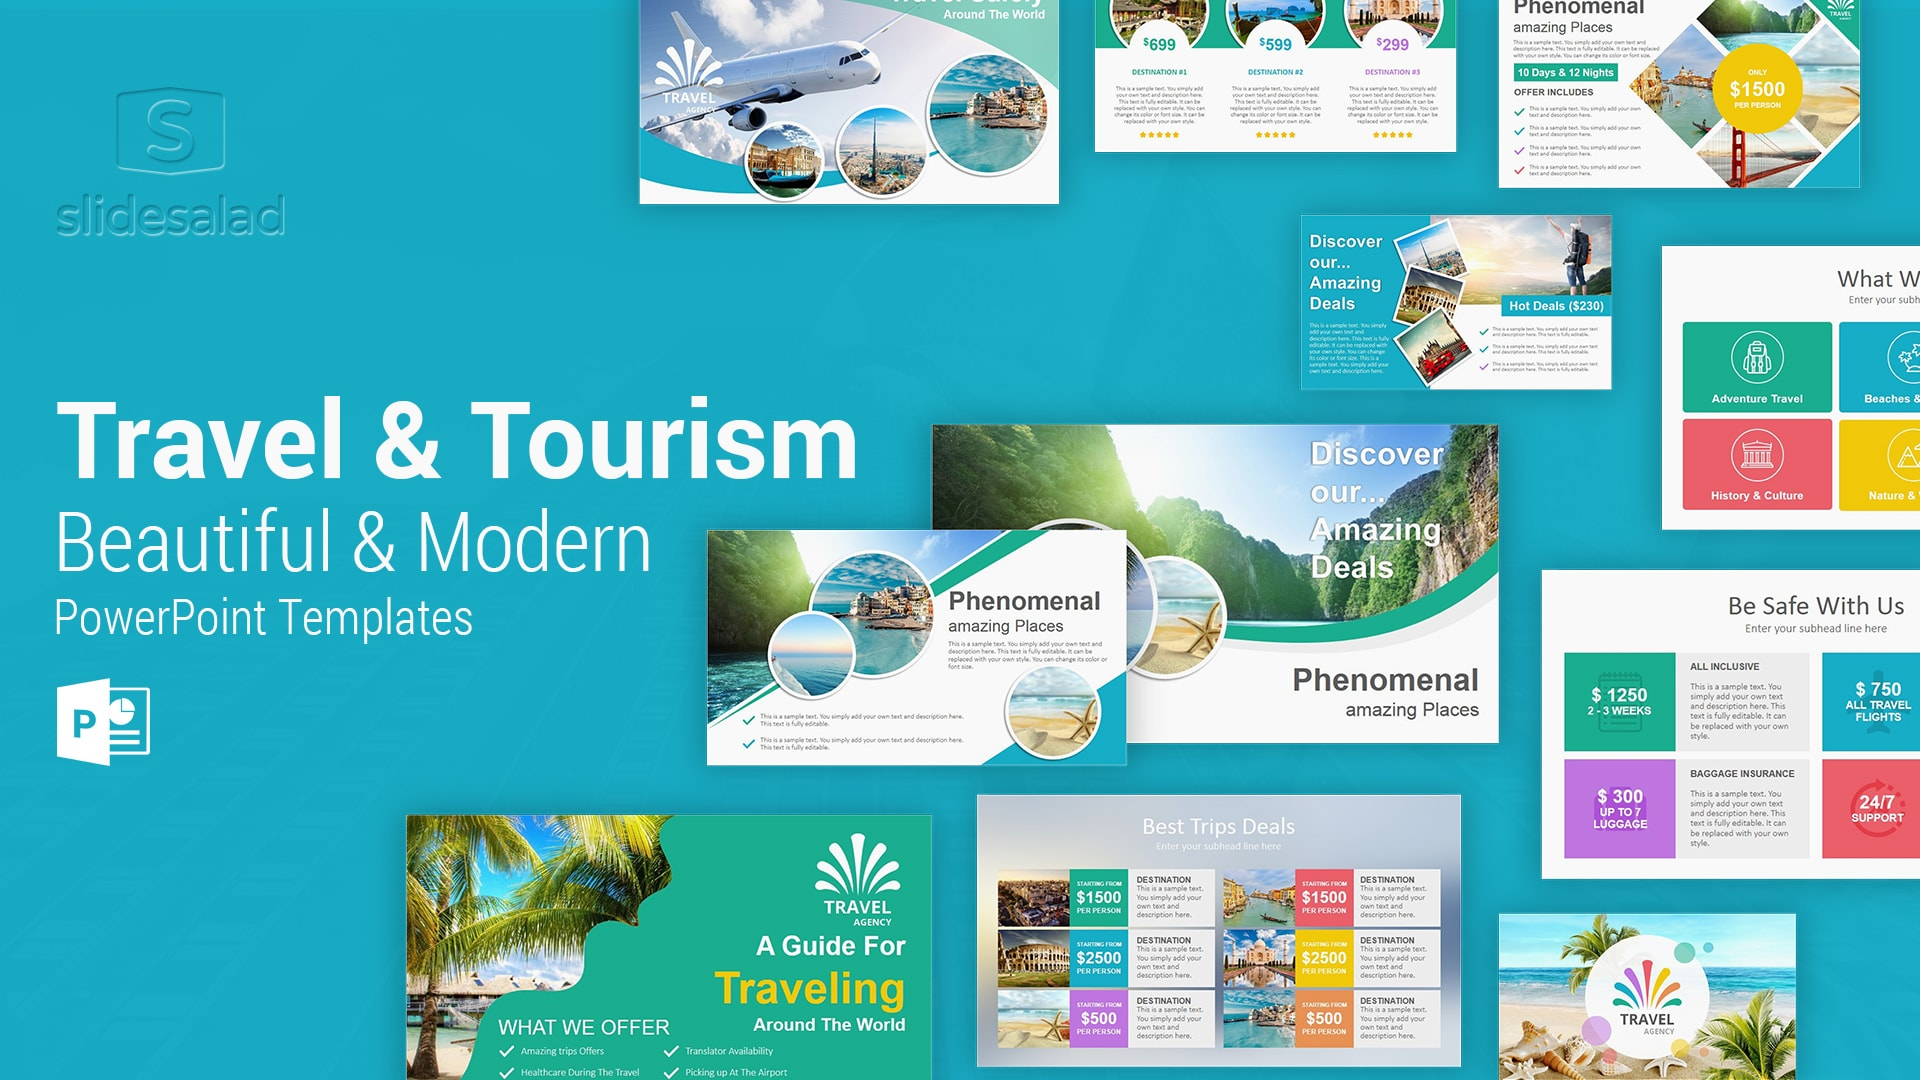 Travel and Tourism PowerPoint Presentation Template - Beautiful Modern PowerPoint Templates